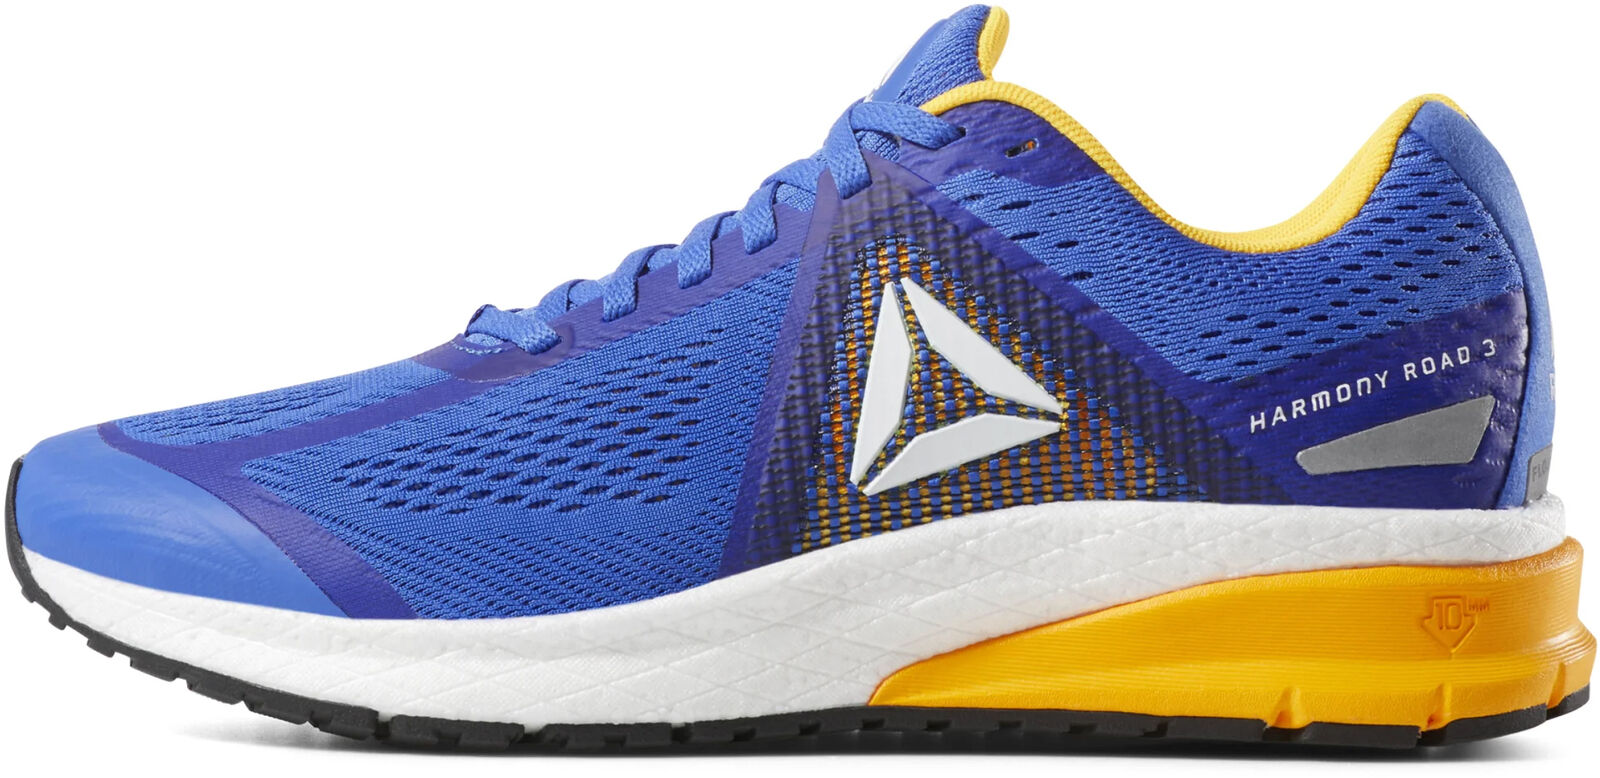 Reebok Harmony Road 3 Mens Running shoes - bluee